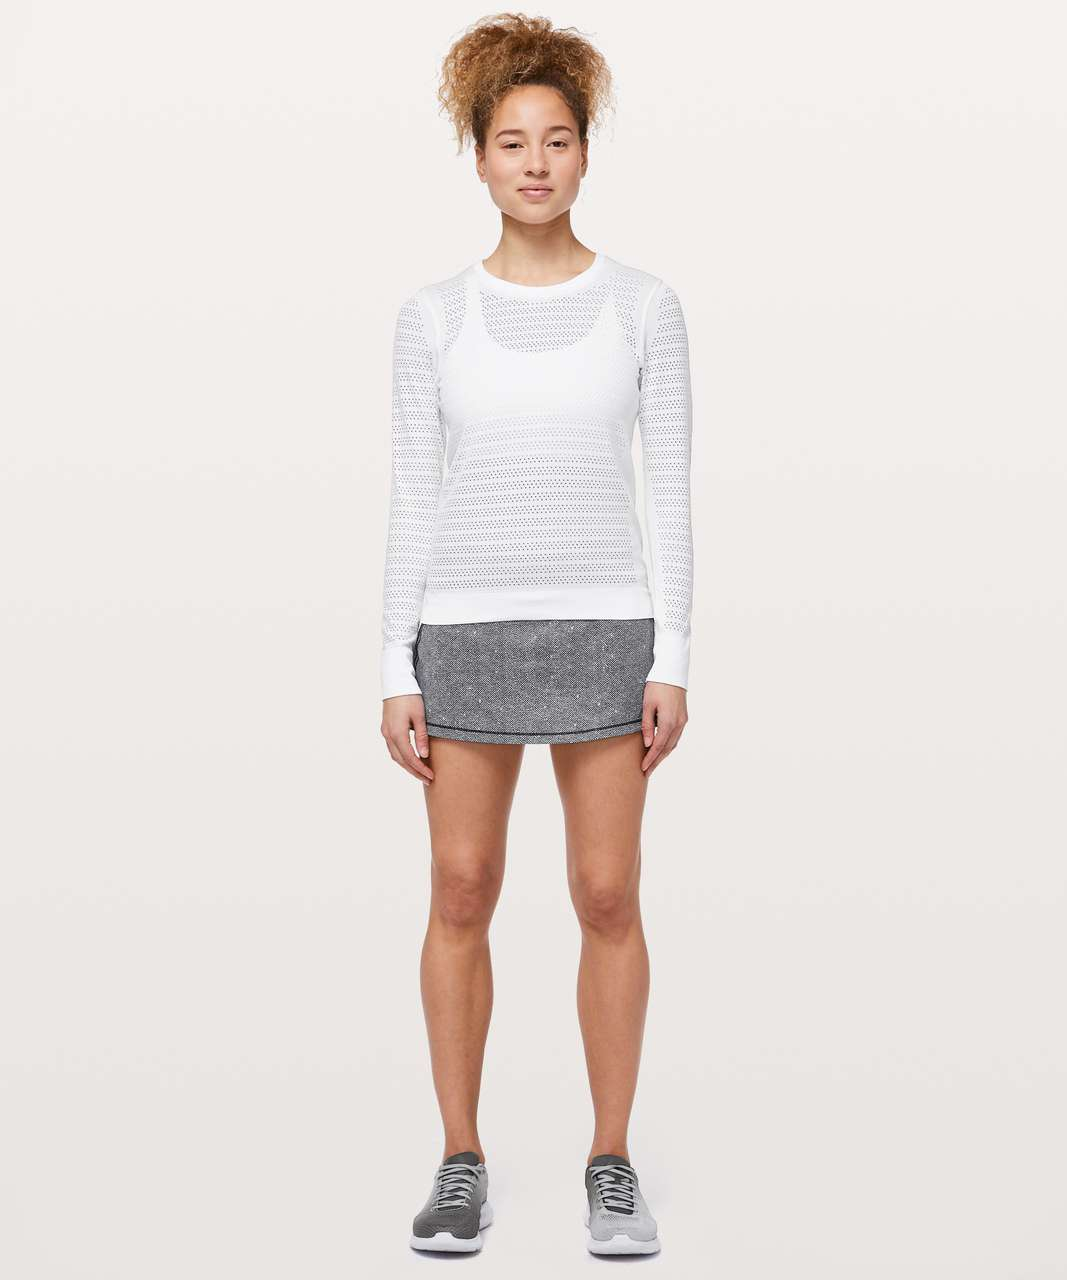 Lululemon Pace Rival Skirt II (Regular) *4-way Stretch - Dotscape Alpine White Black / Black